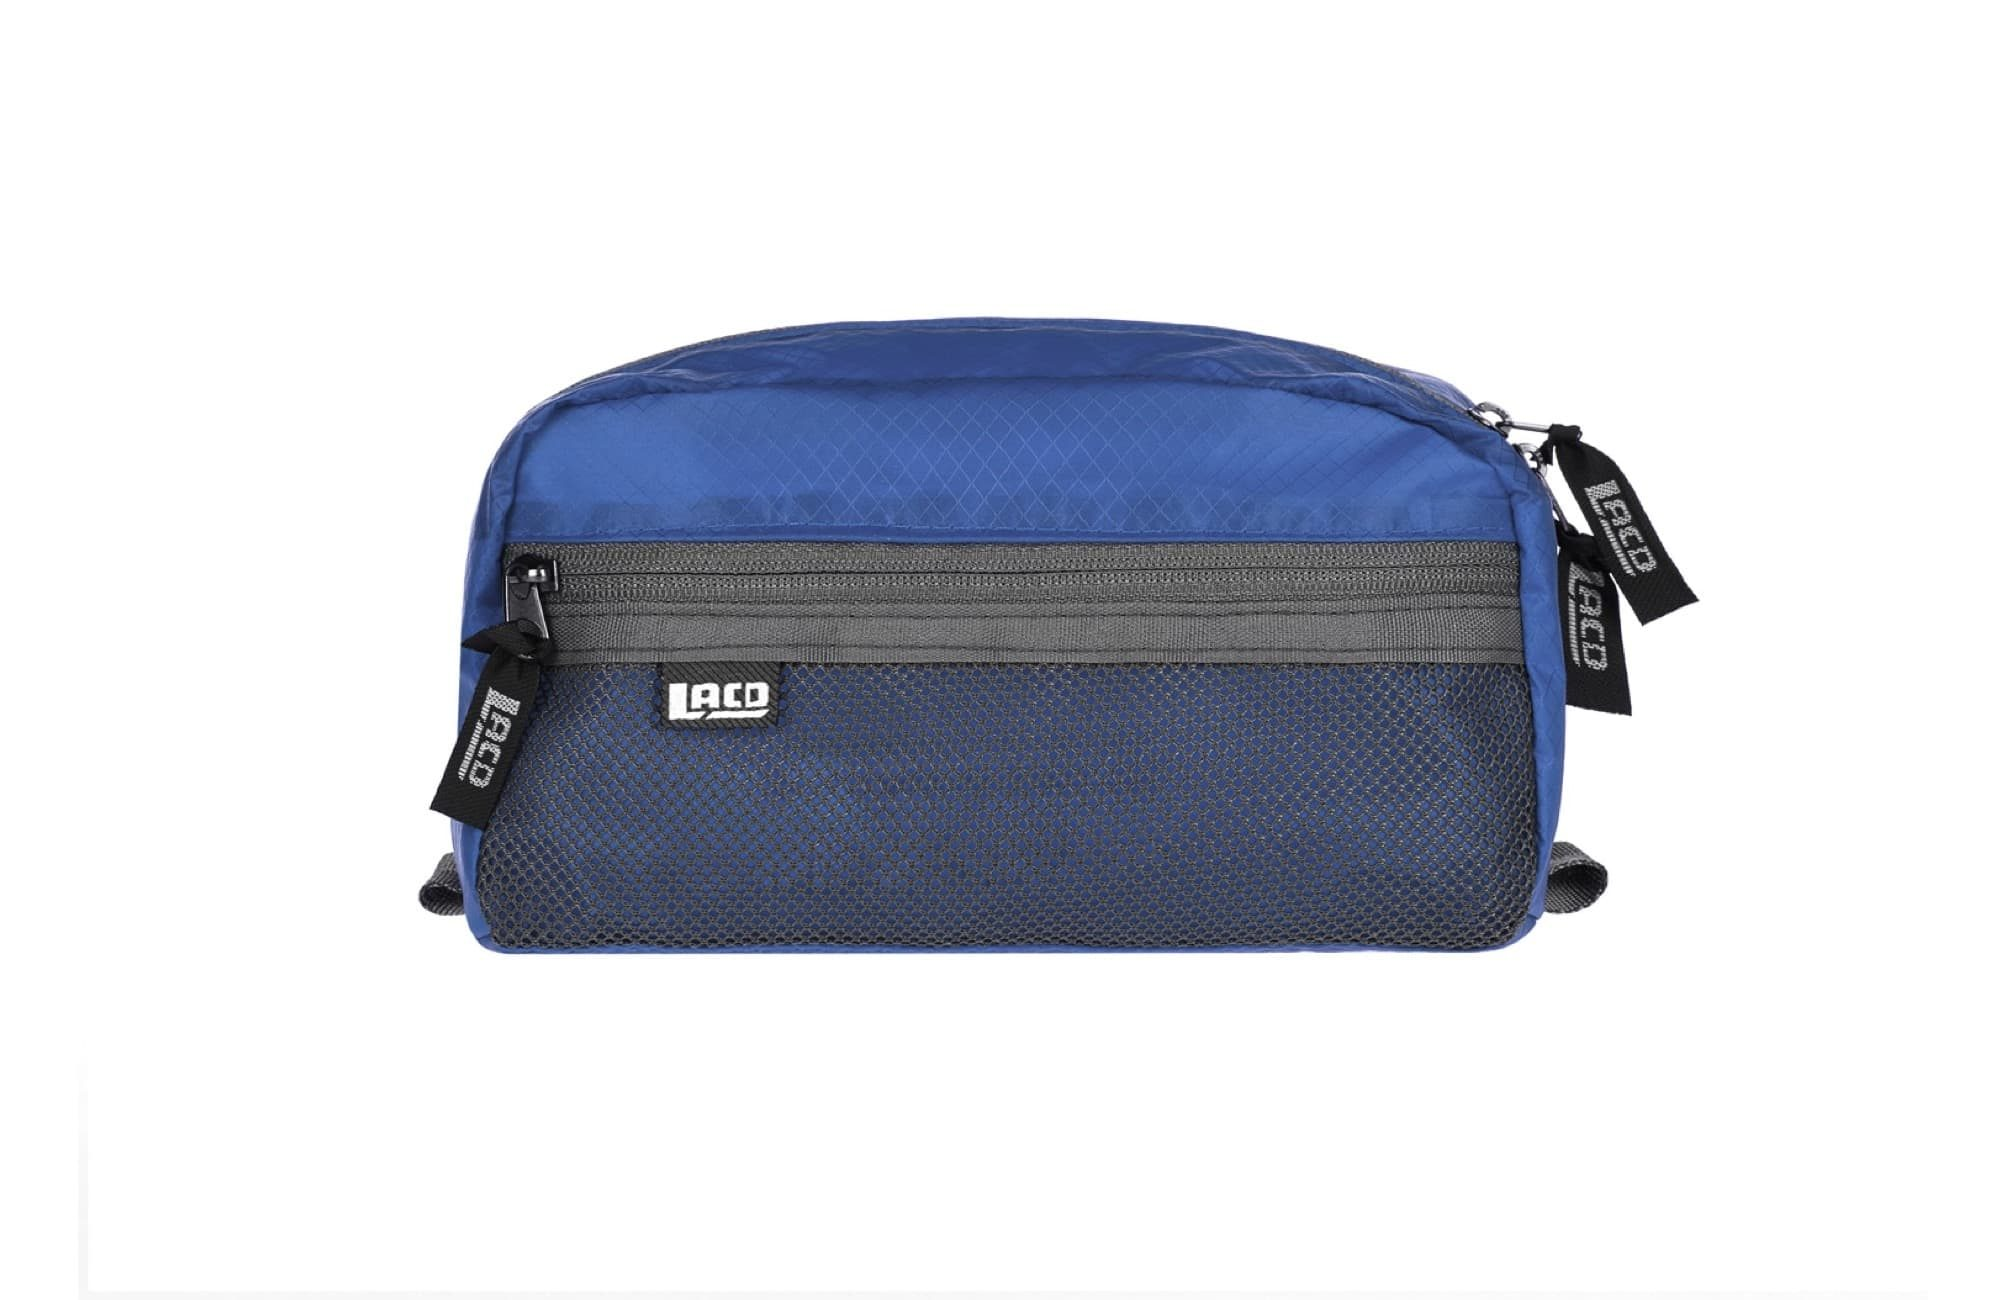 LACD Wash Bag Ultralight